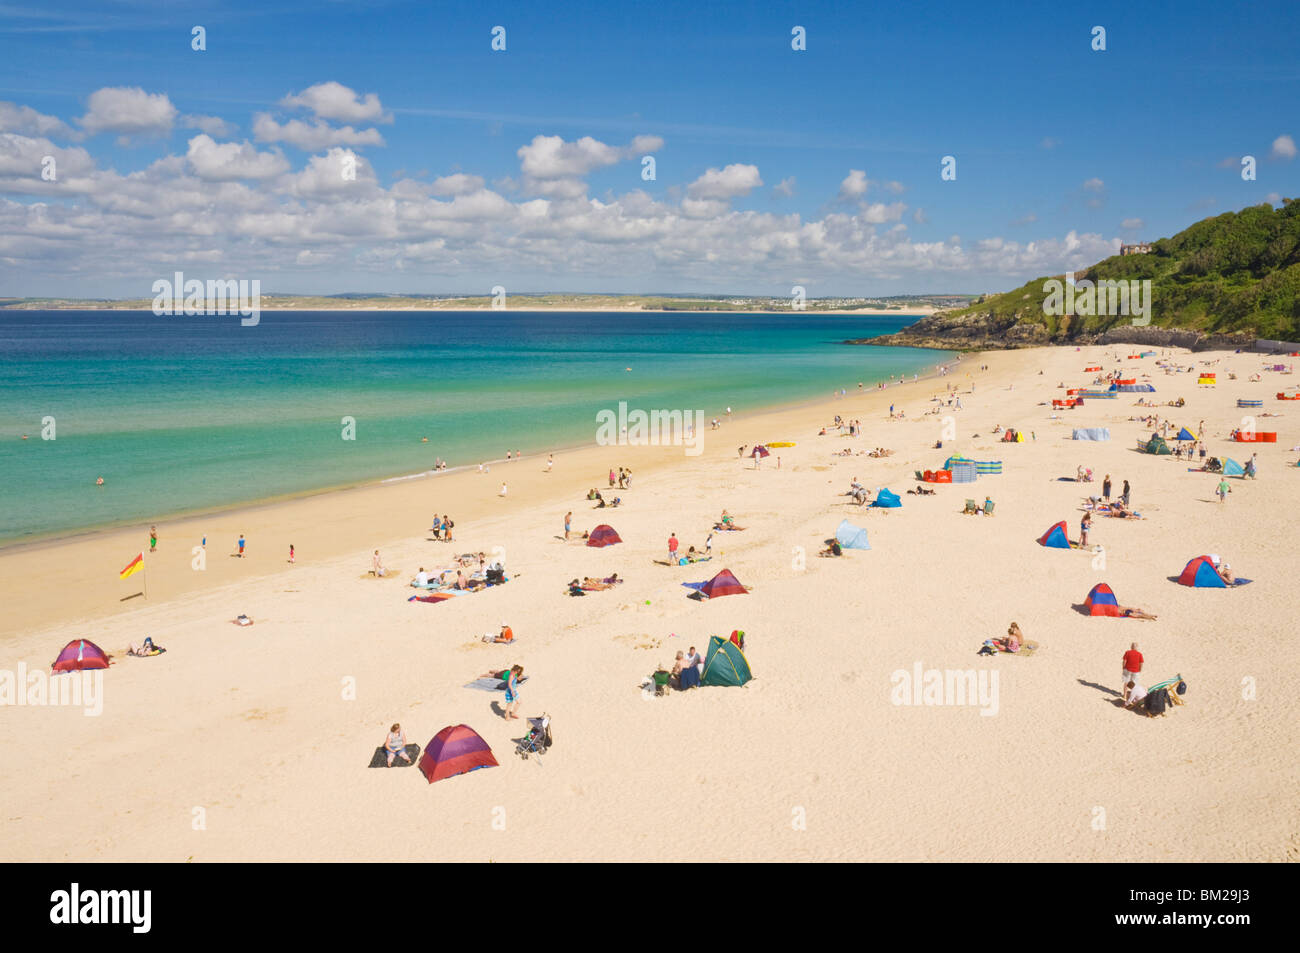 Holidaymakers and tourists sunbathing on Porthminster beach, St. Ives (Pedn Olva), North Cornwall, UK - Stock Image